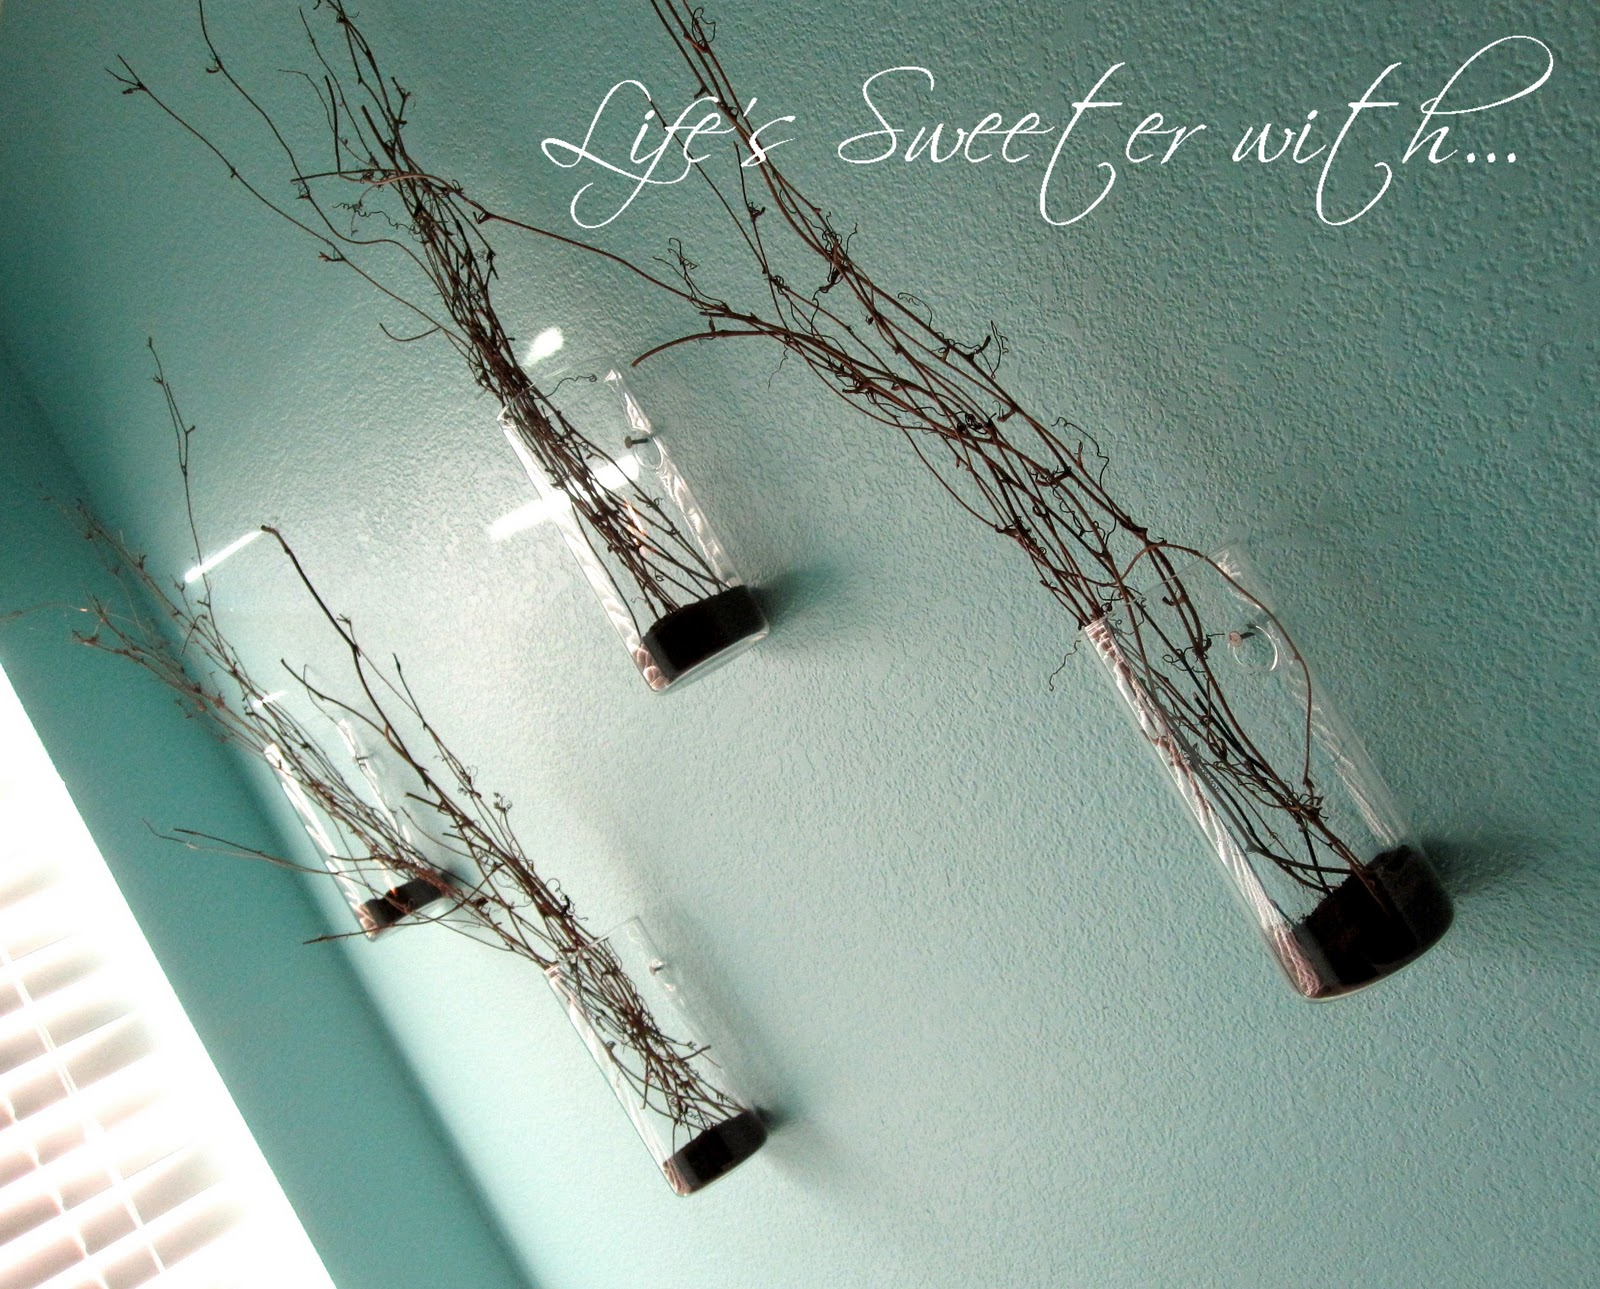 Lifes sweeter with chocolate wall mount vases wall mount vases reviewsmspy